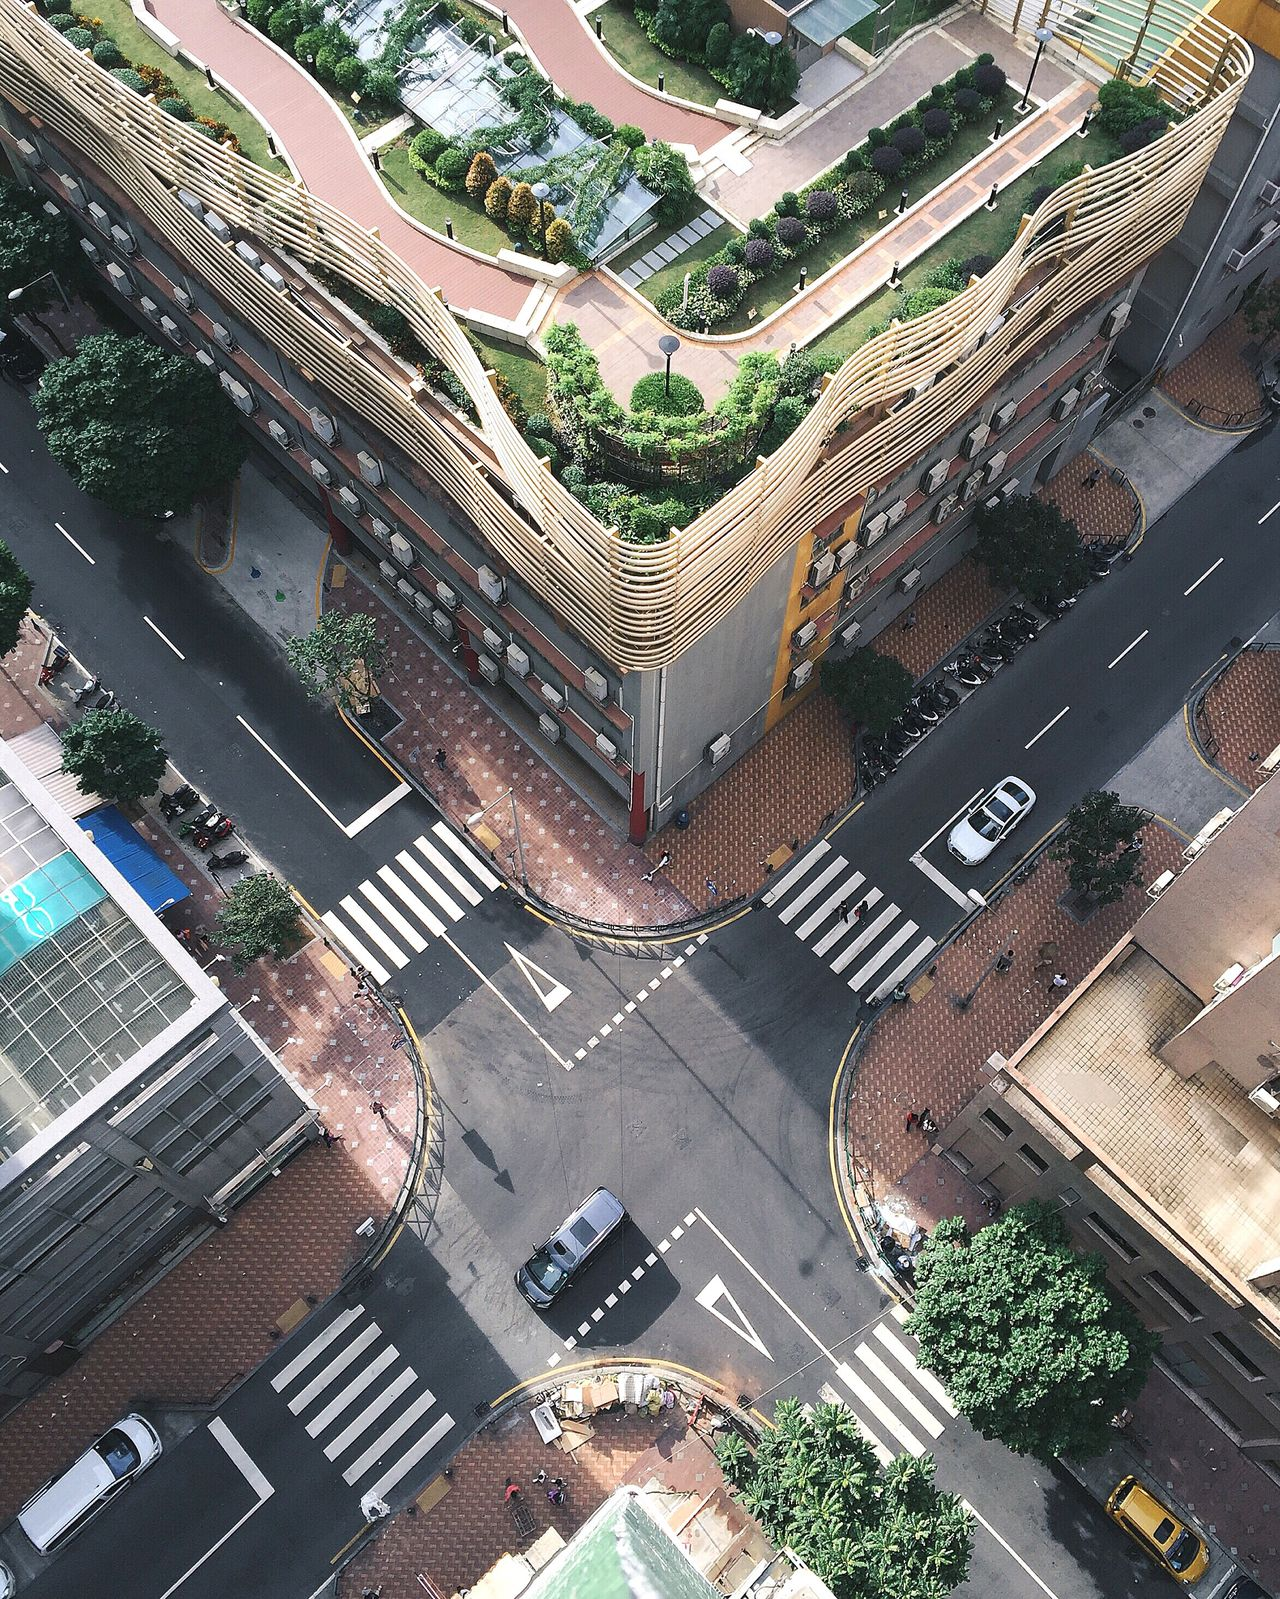 High angle view of cars on city street amidst buildings